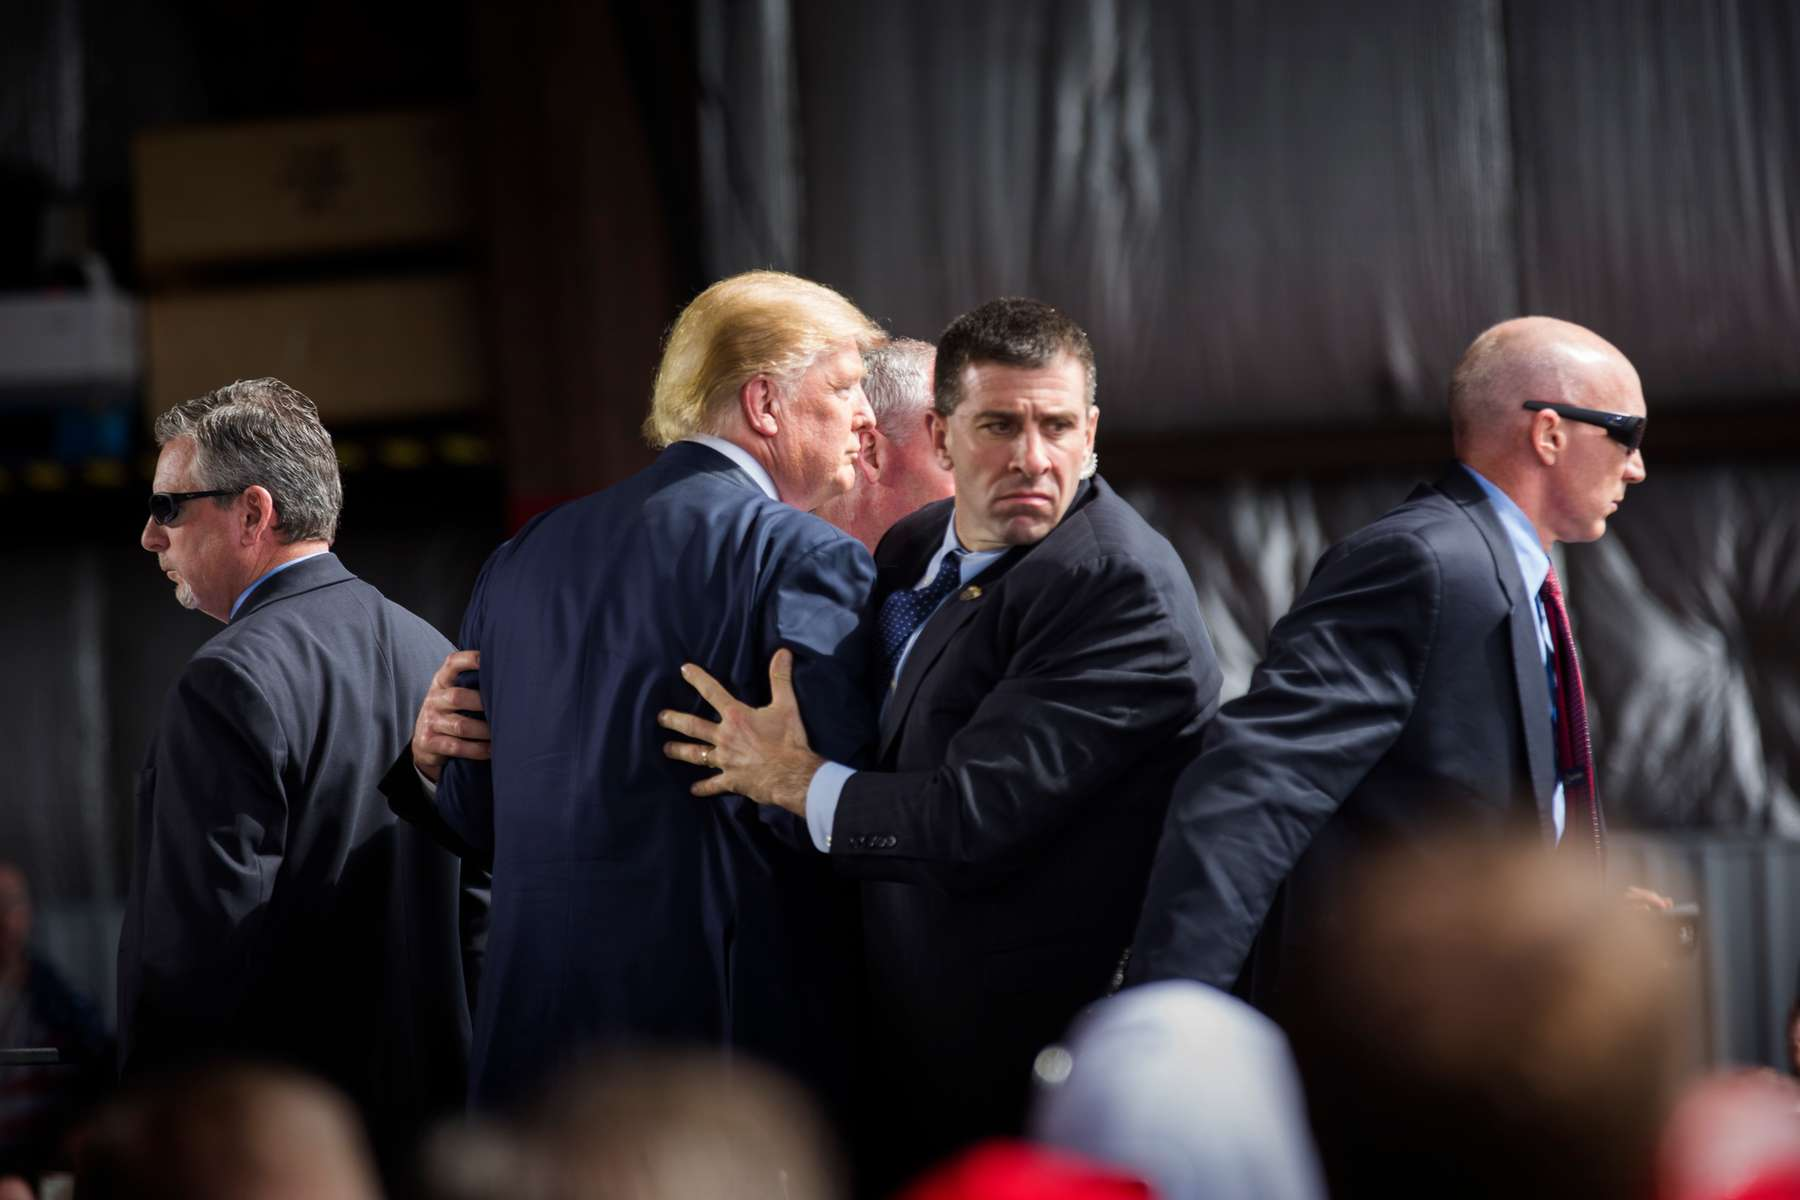 DAYTON, OH - MARCH 12: Republican presidential candidate Donald Trump is surrounded by Secret Service agents during a campaign event on March 12, 2016 in Dayton, Ohio.  The agents were responded to a protestor that had rushed the stage while Trump was speaking.  (Photo by Brooks Kraft/Getty Images)